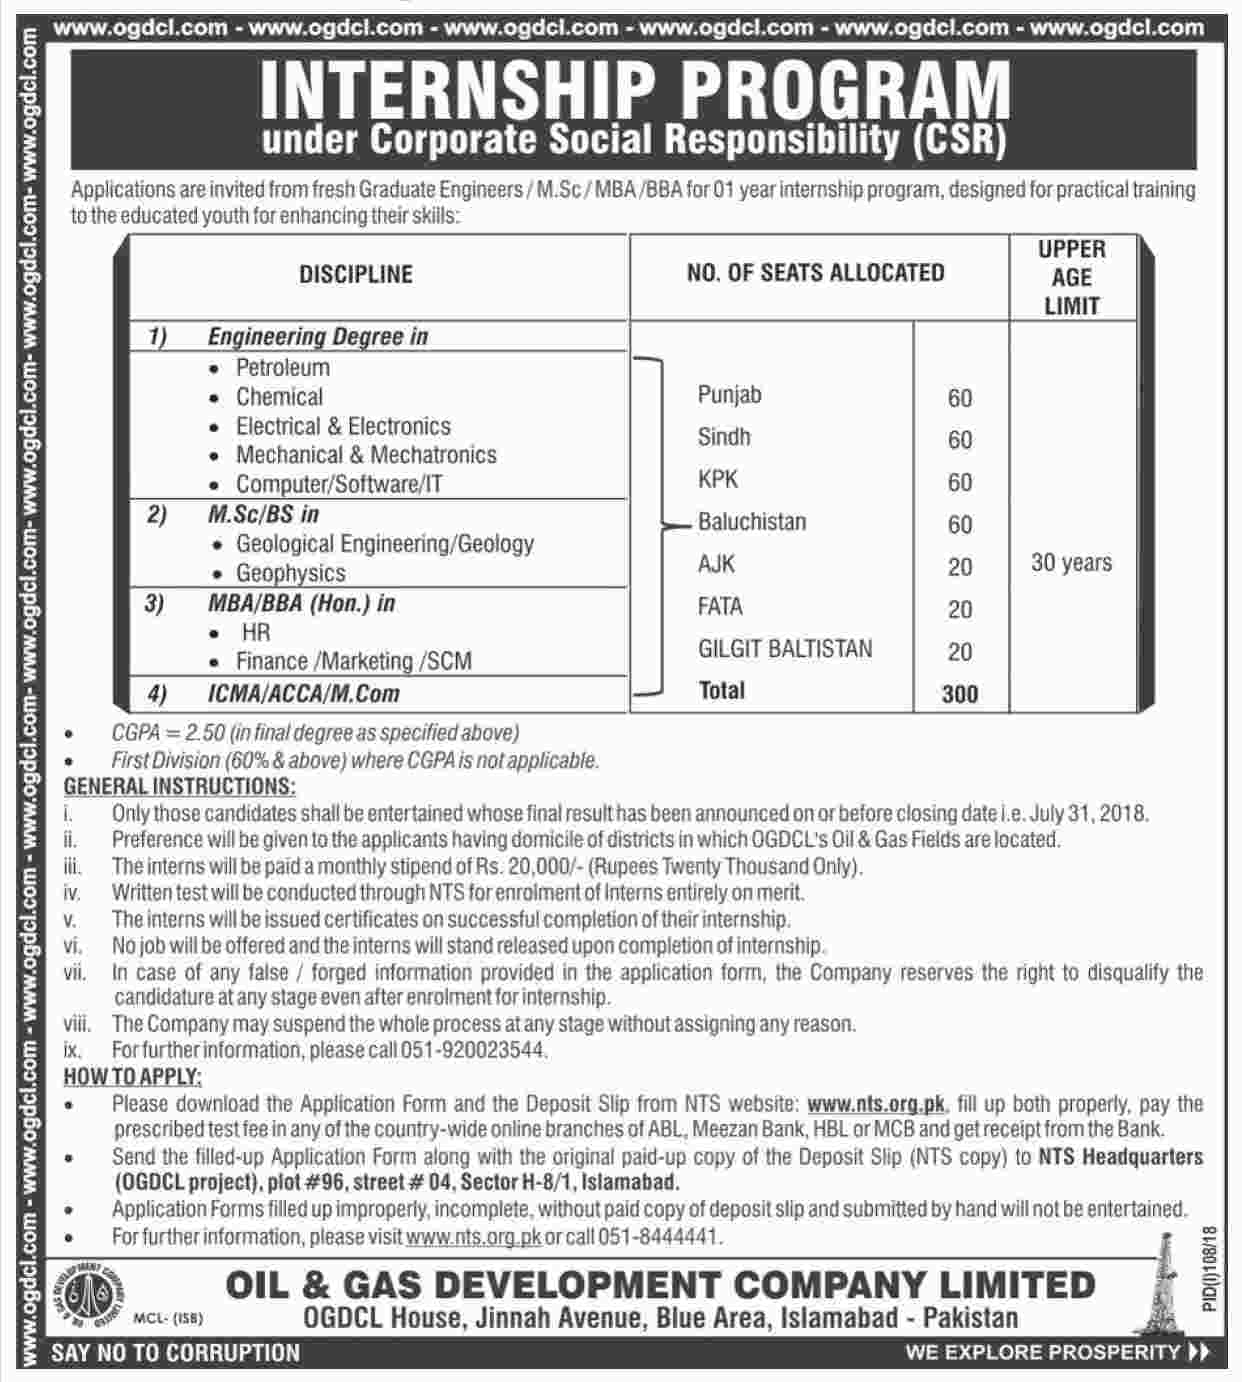 OGDCL Internship program 2018 NTS Application Form Advertisement Last Date